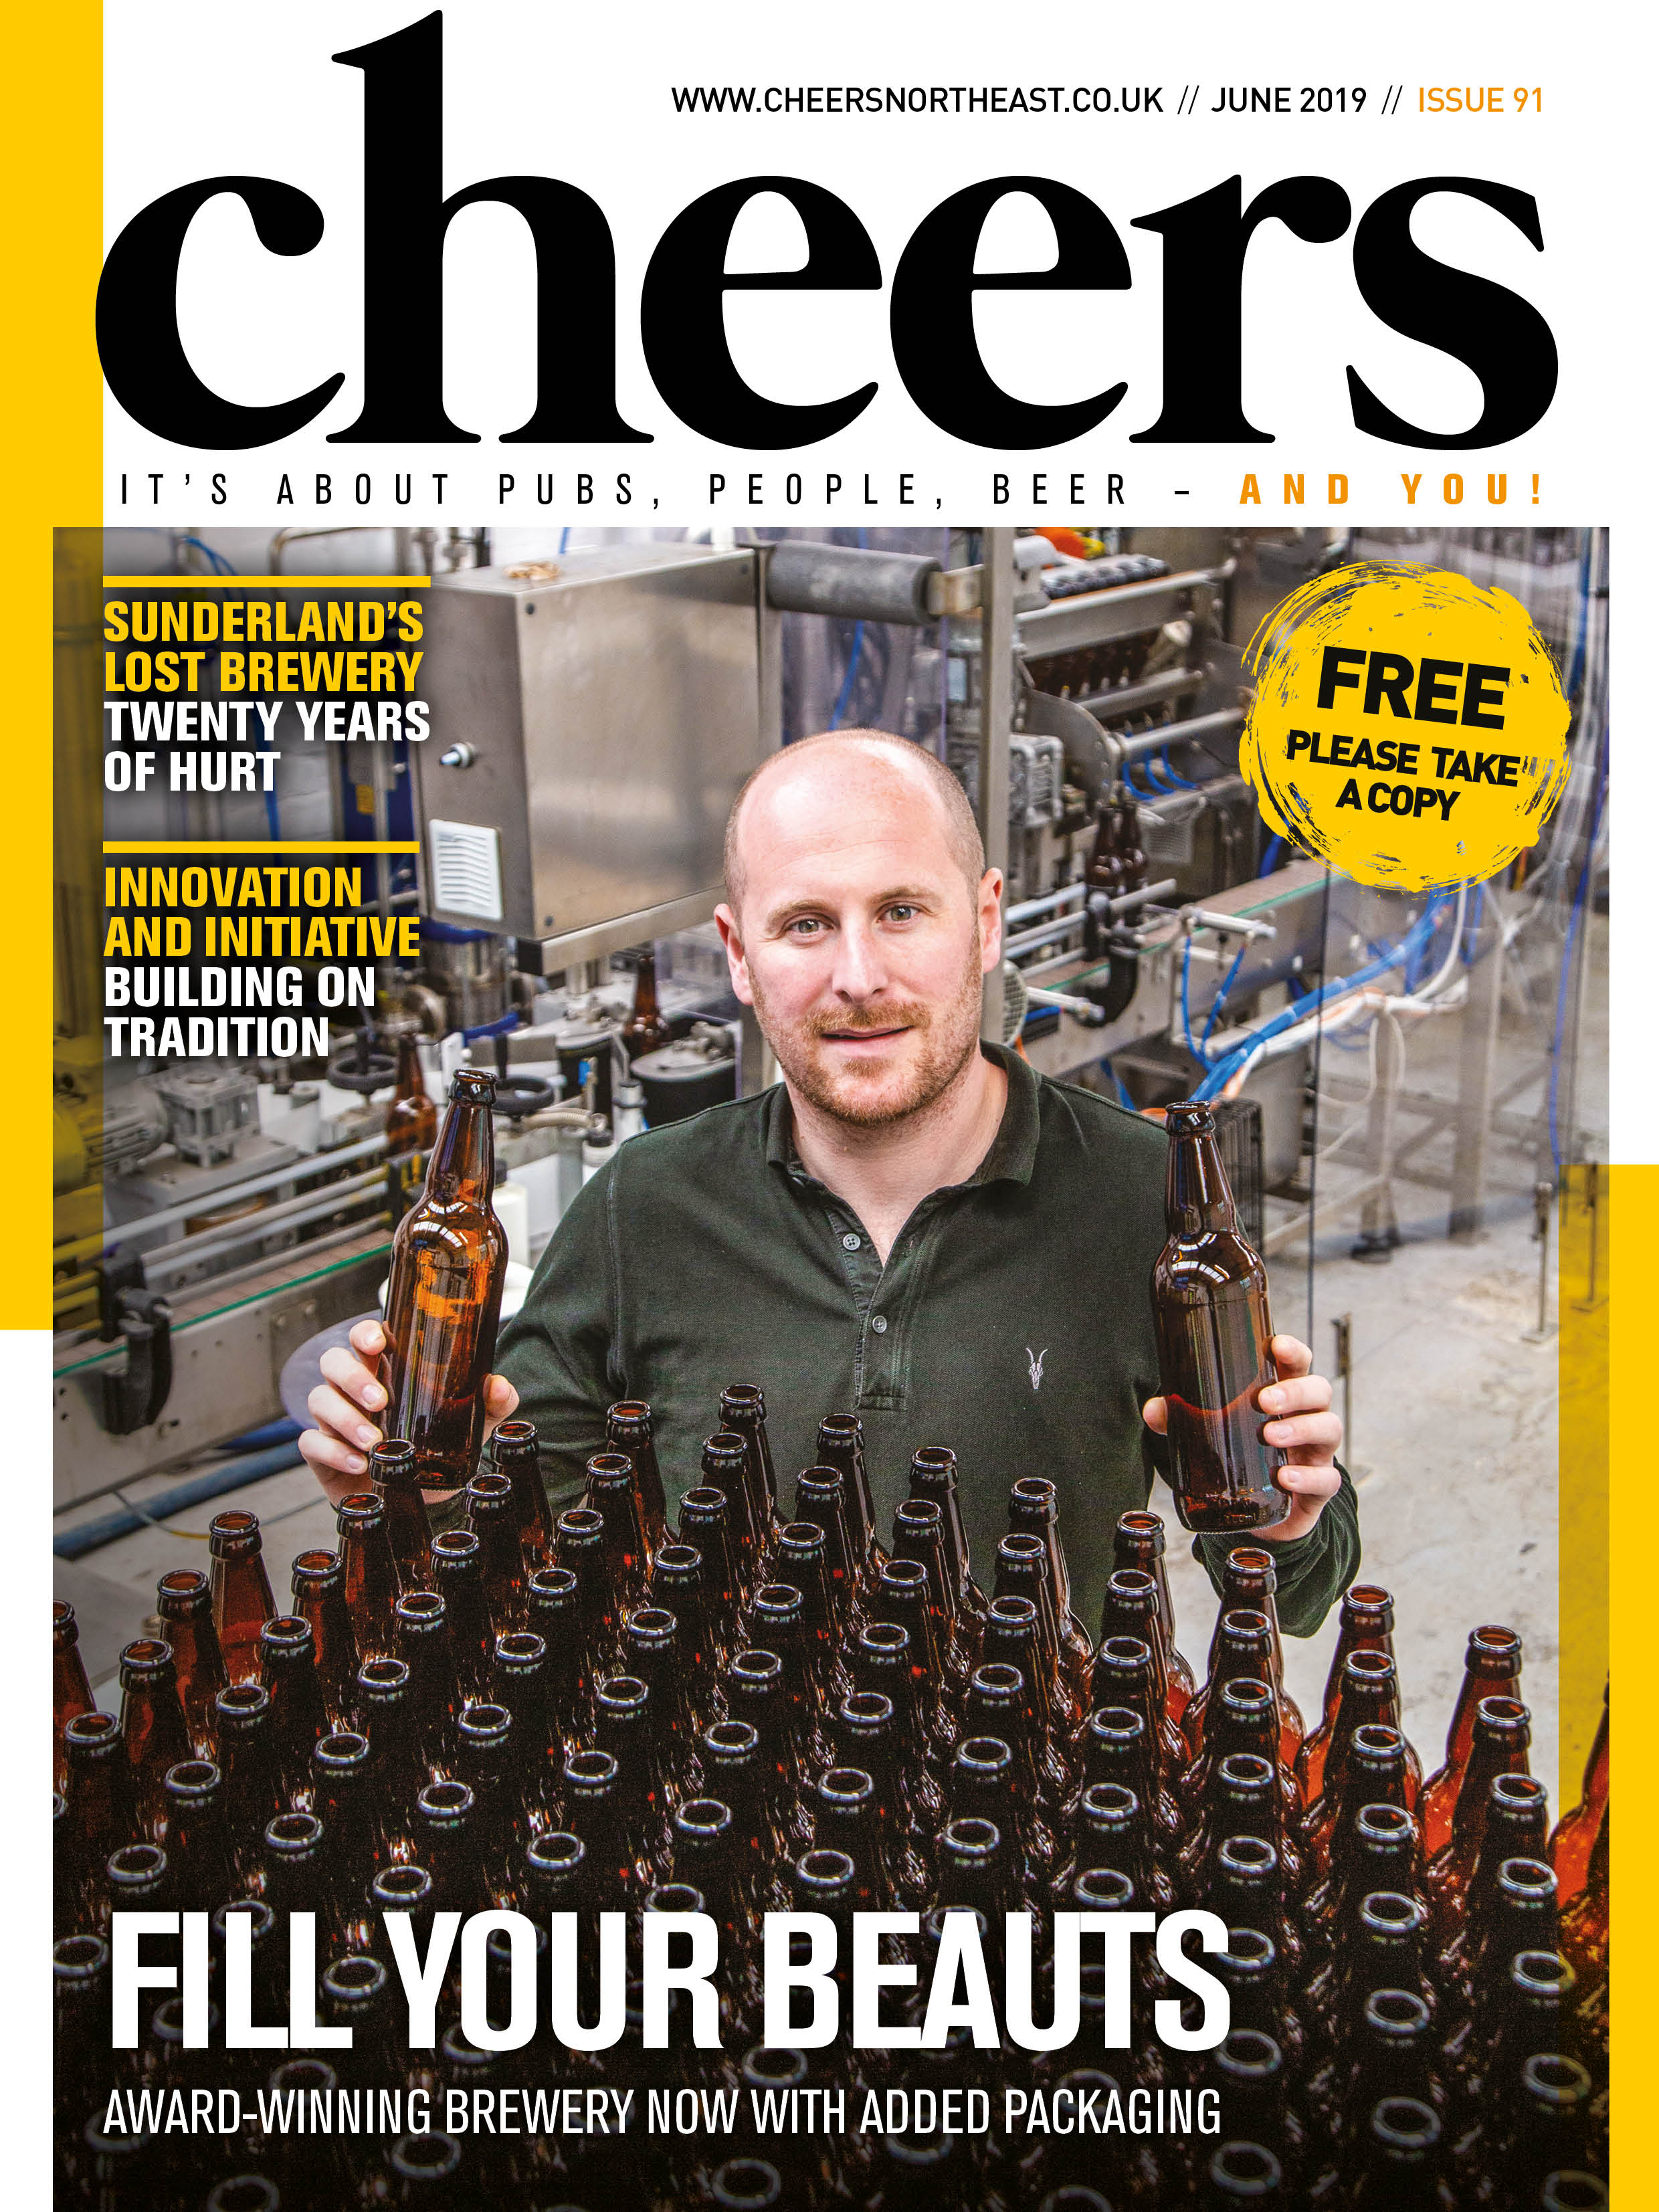 Cheers issue 91